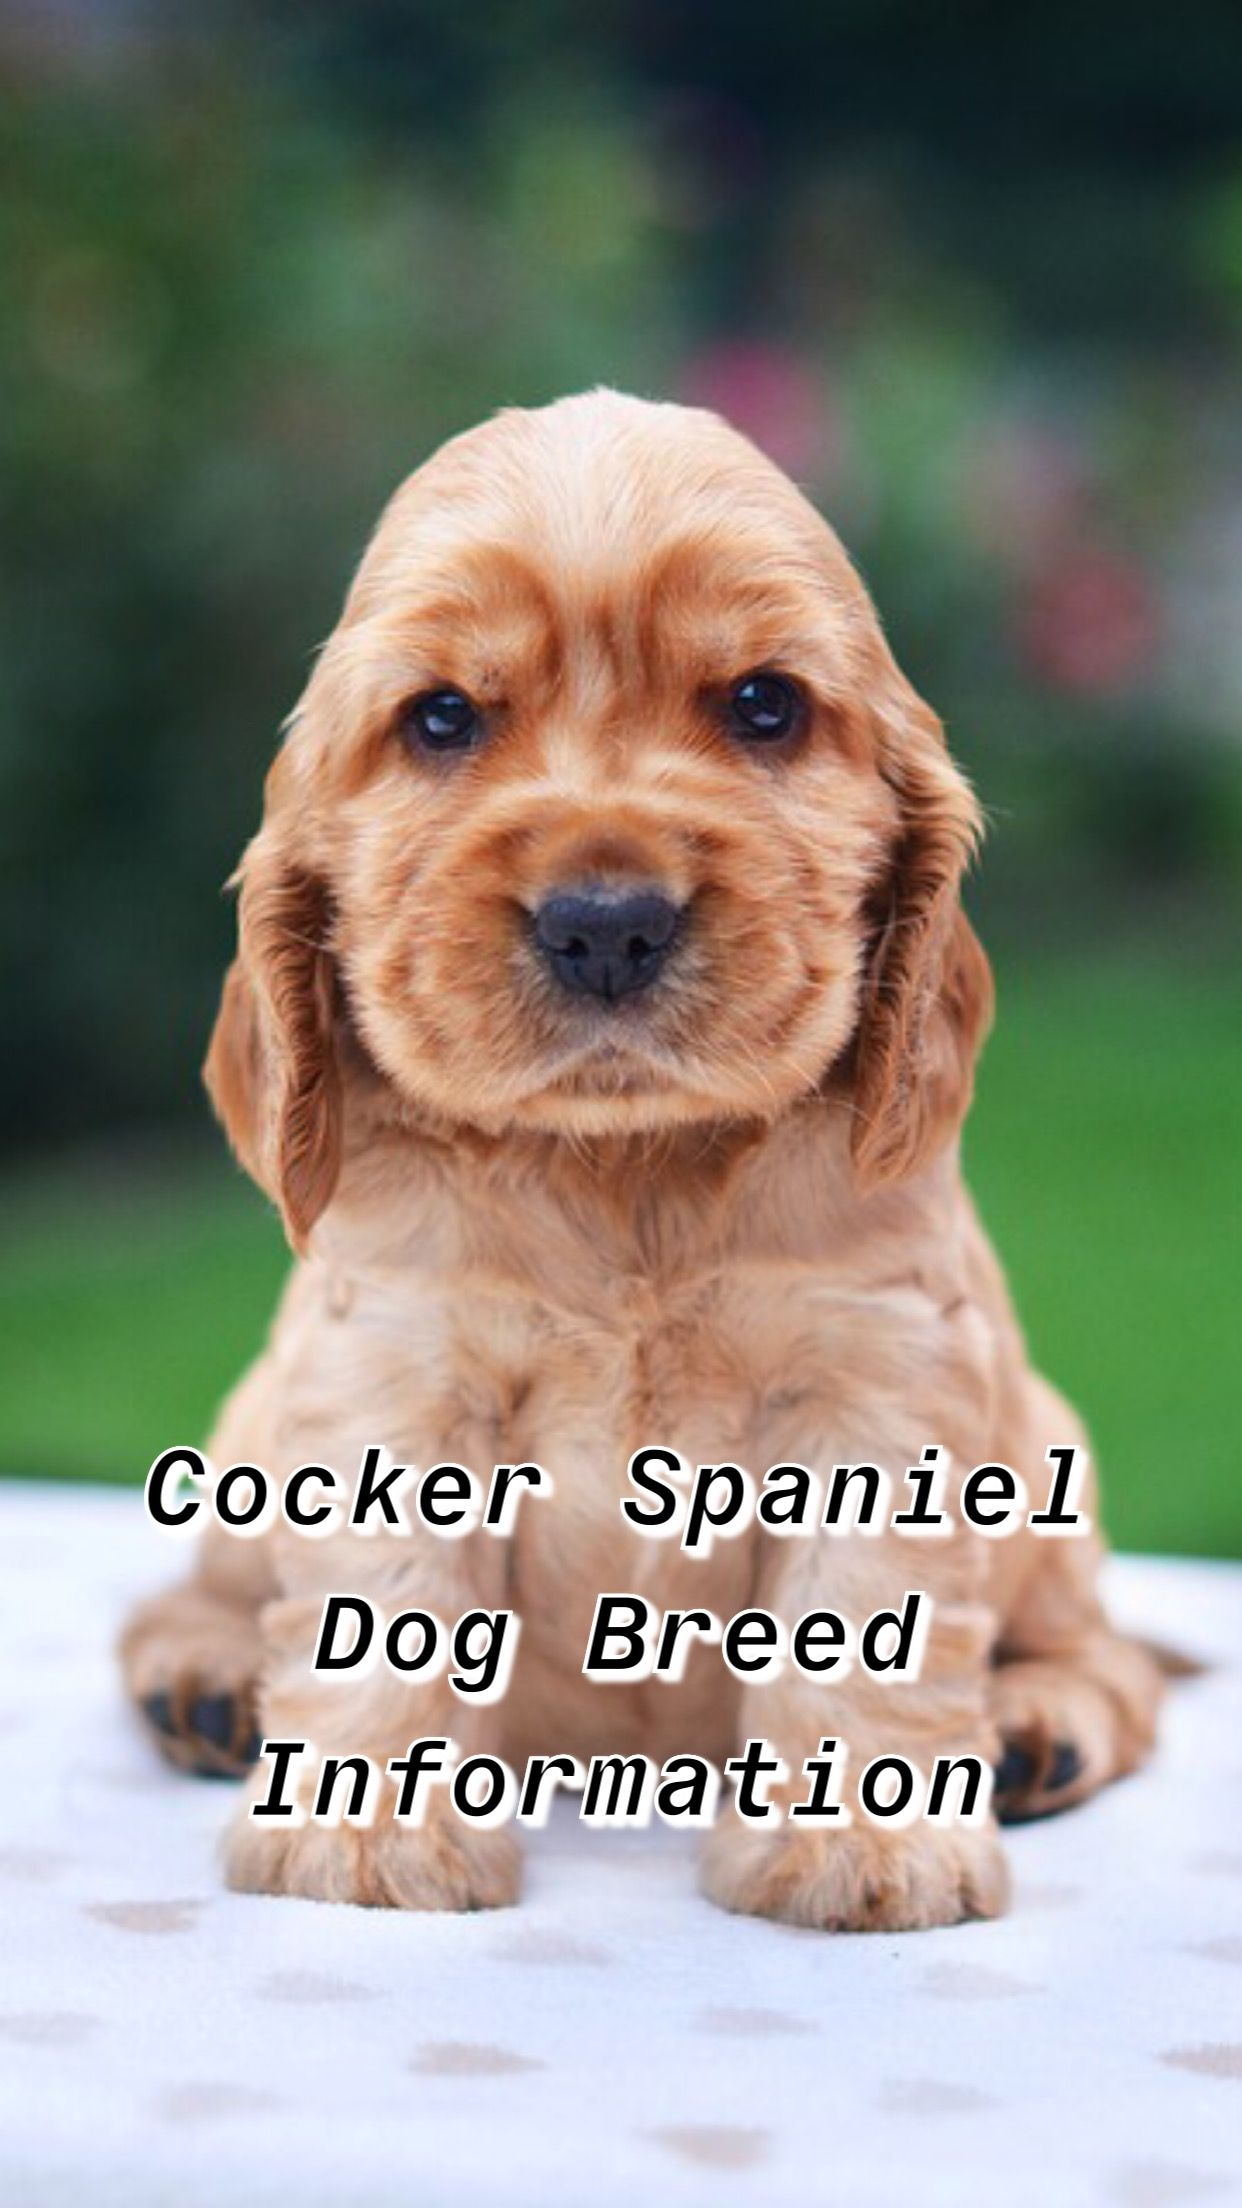 Cocker Spaniel Dog Breed Cocker Spaniel Breeds Cocker Spaniel Dog Spaniel Breeds